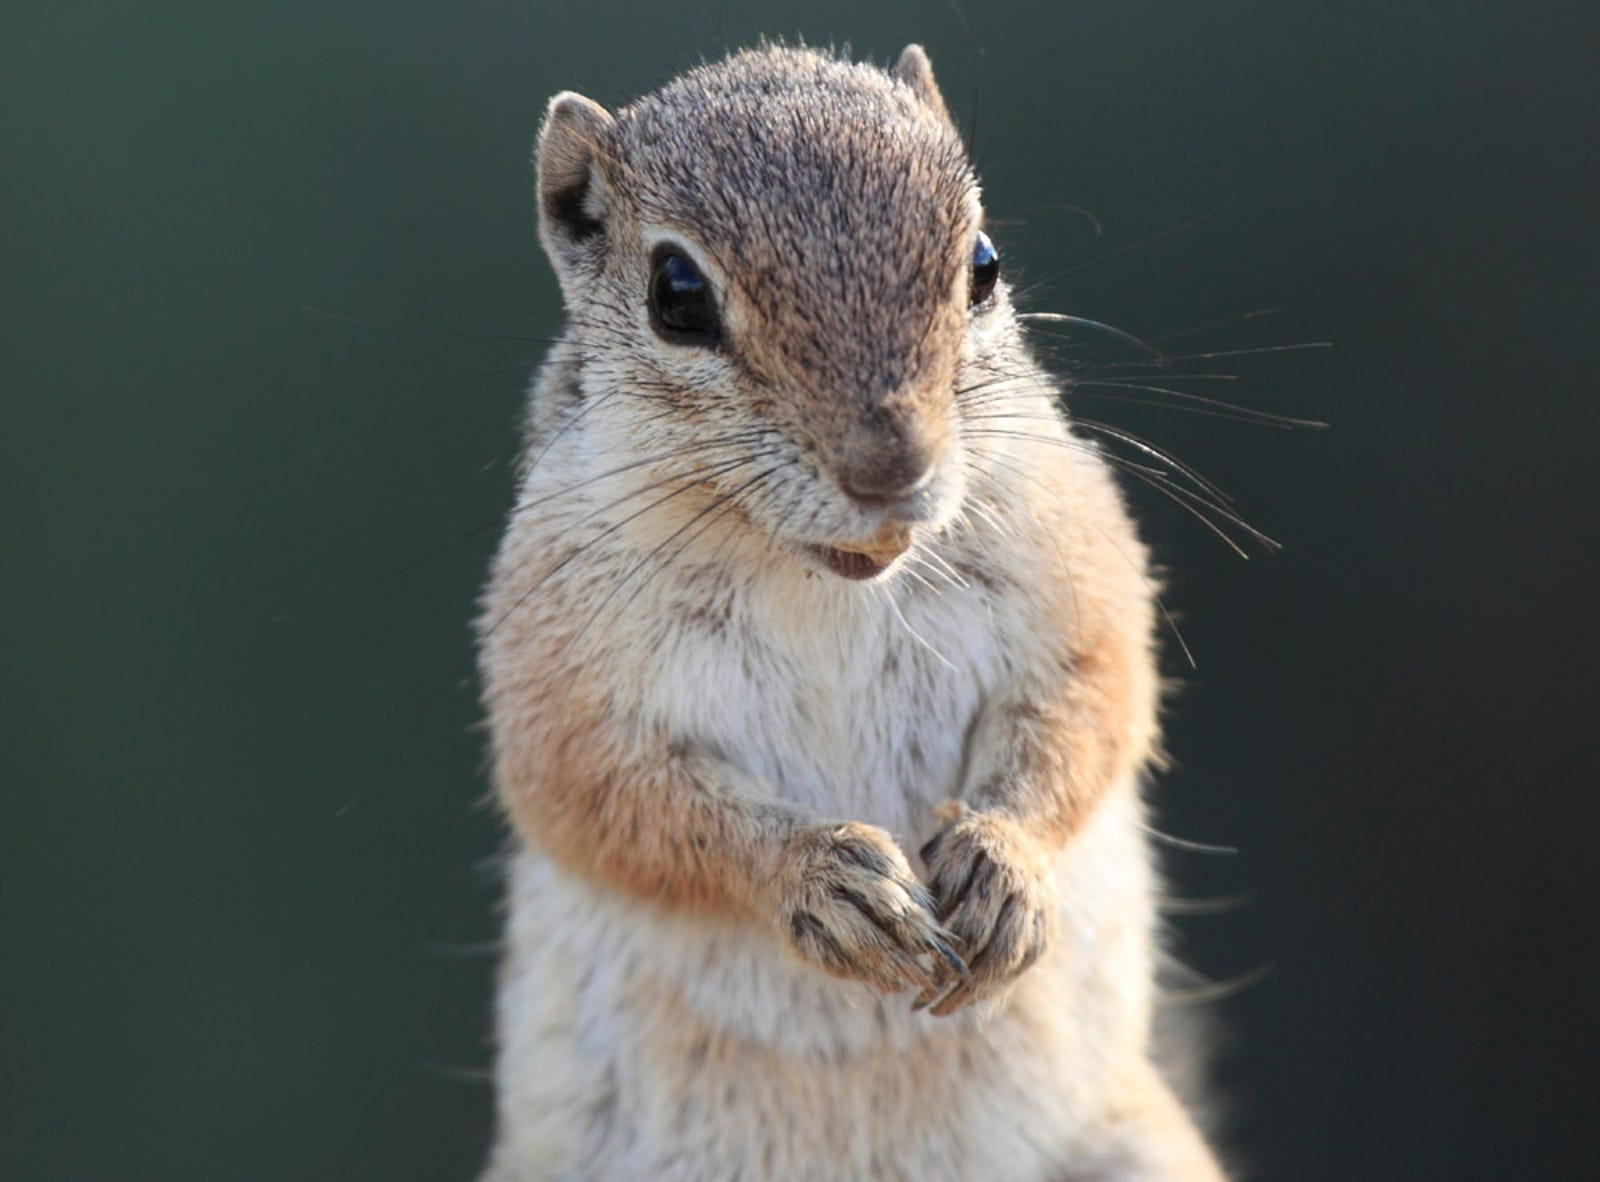 U.S. Renews Contract With Spotted Ground Squirrels Through 2015